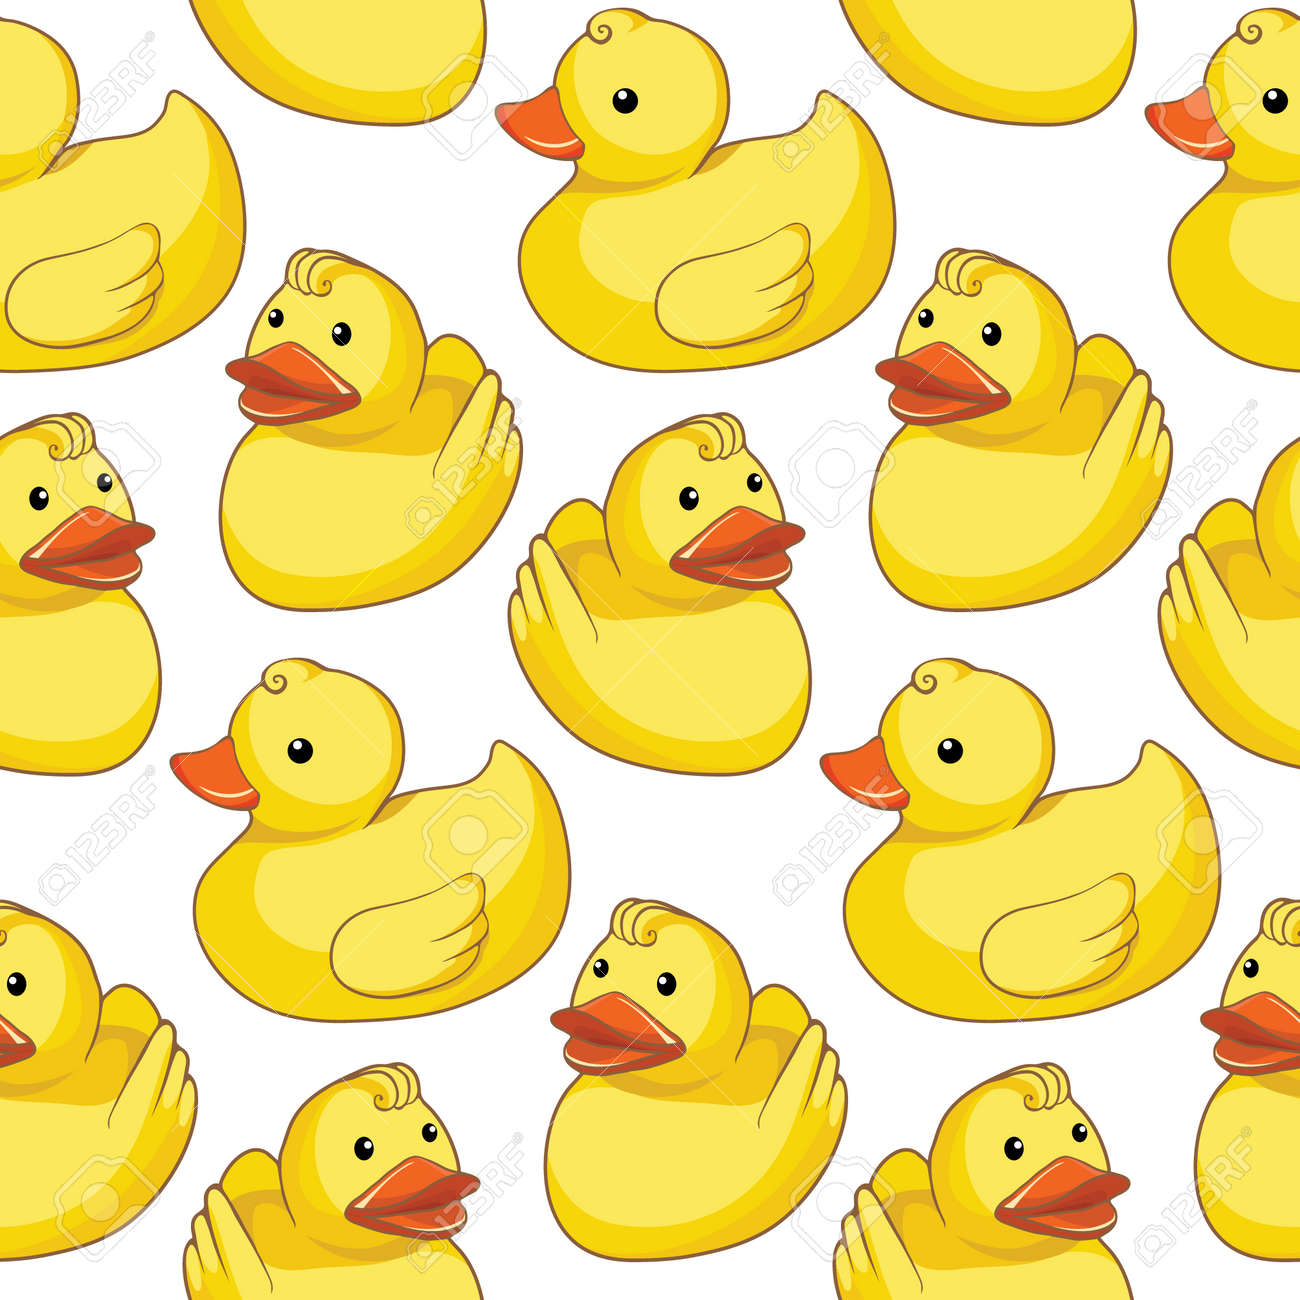 Pattern with yellow ducks - 27378164